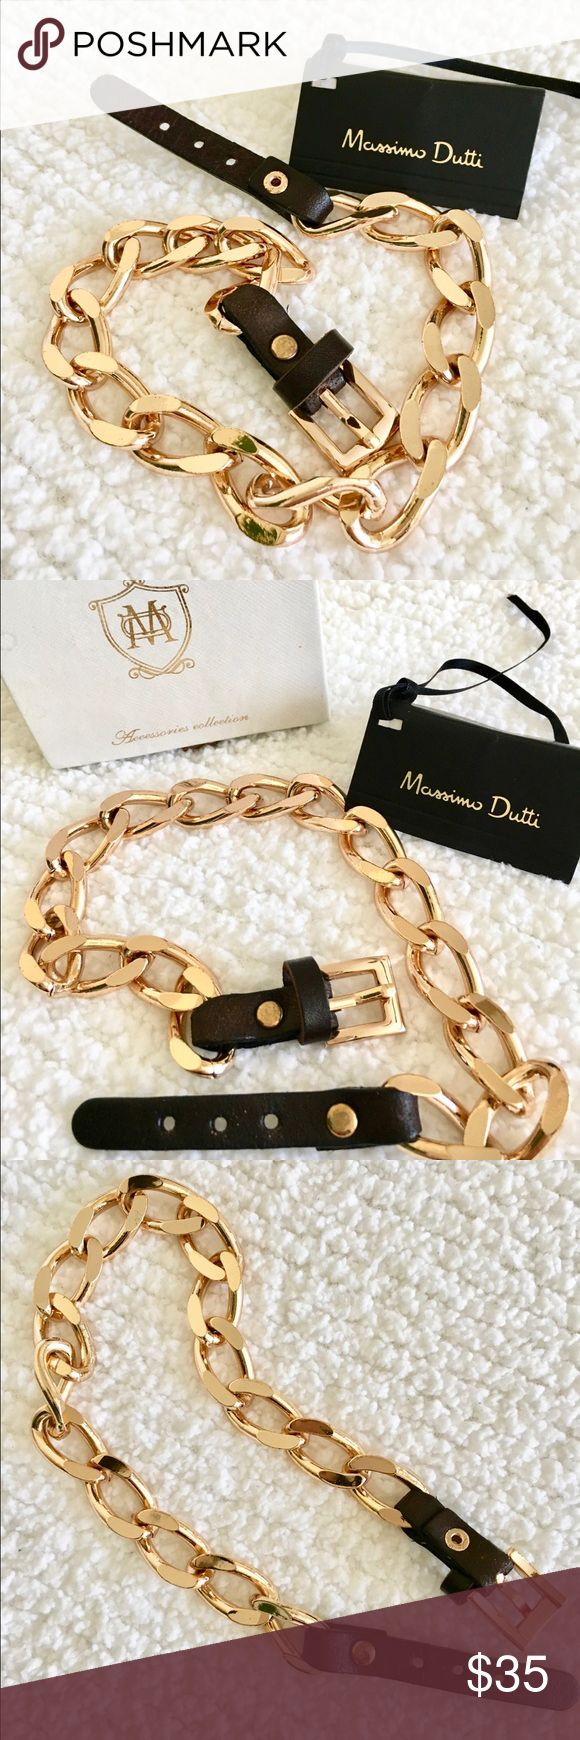 Stainless steel chain & leather belt bracelet Massimo Dutti stainless steel chain and leather belt bracelet. Brand new with tag. Approximate 37.5 cm. Massimo Dutti Jewelry Bracelets